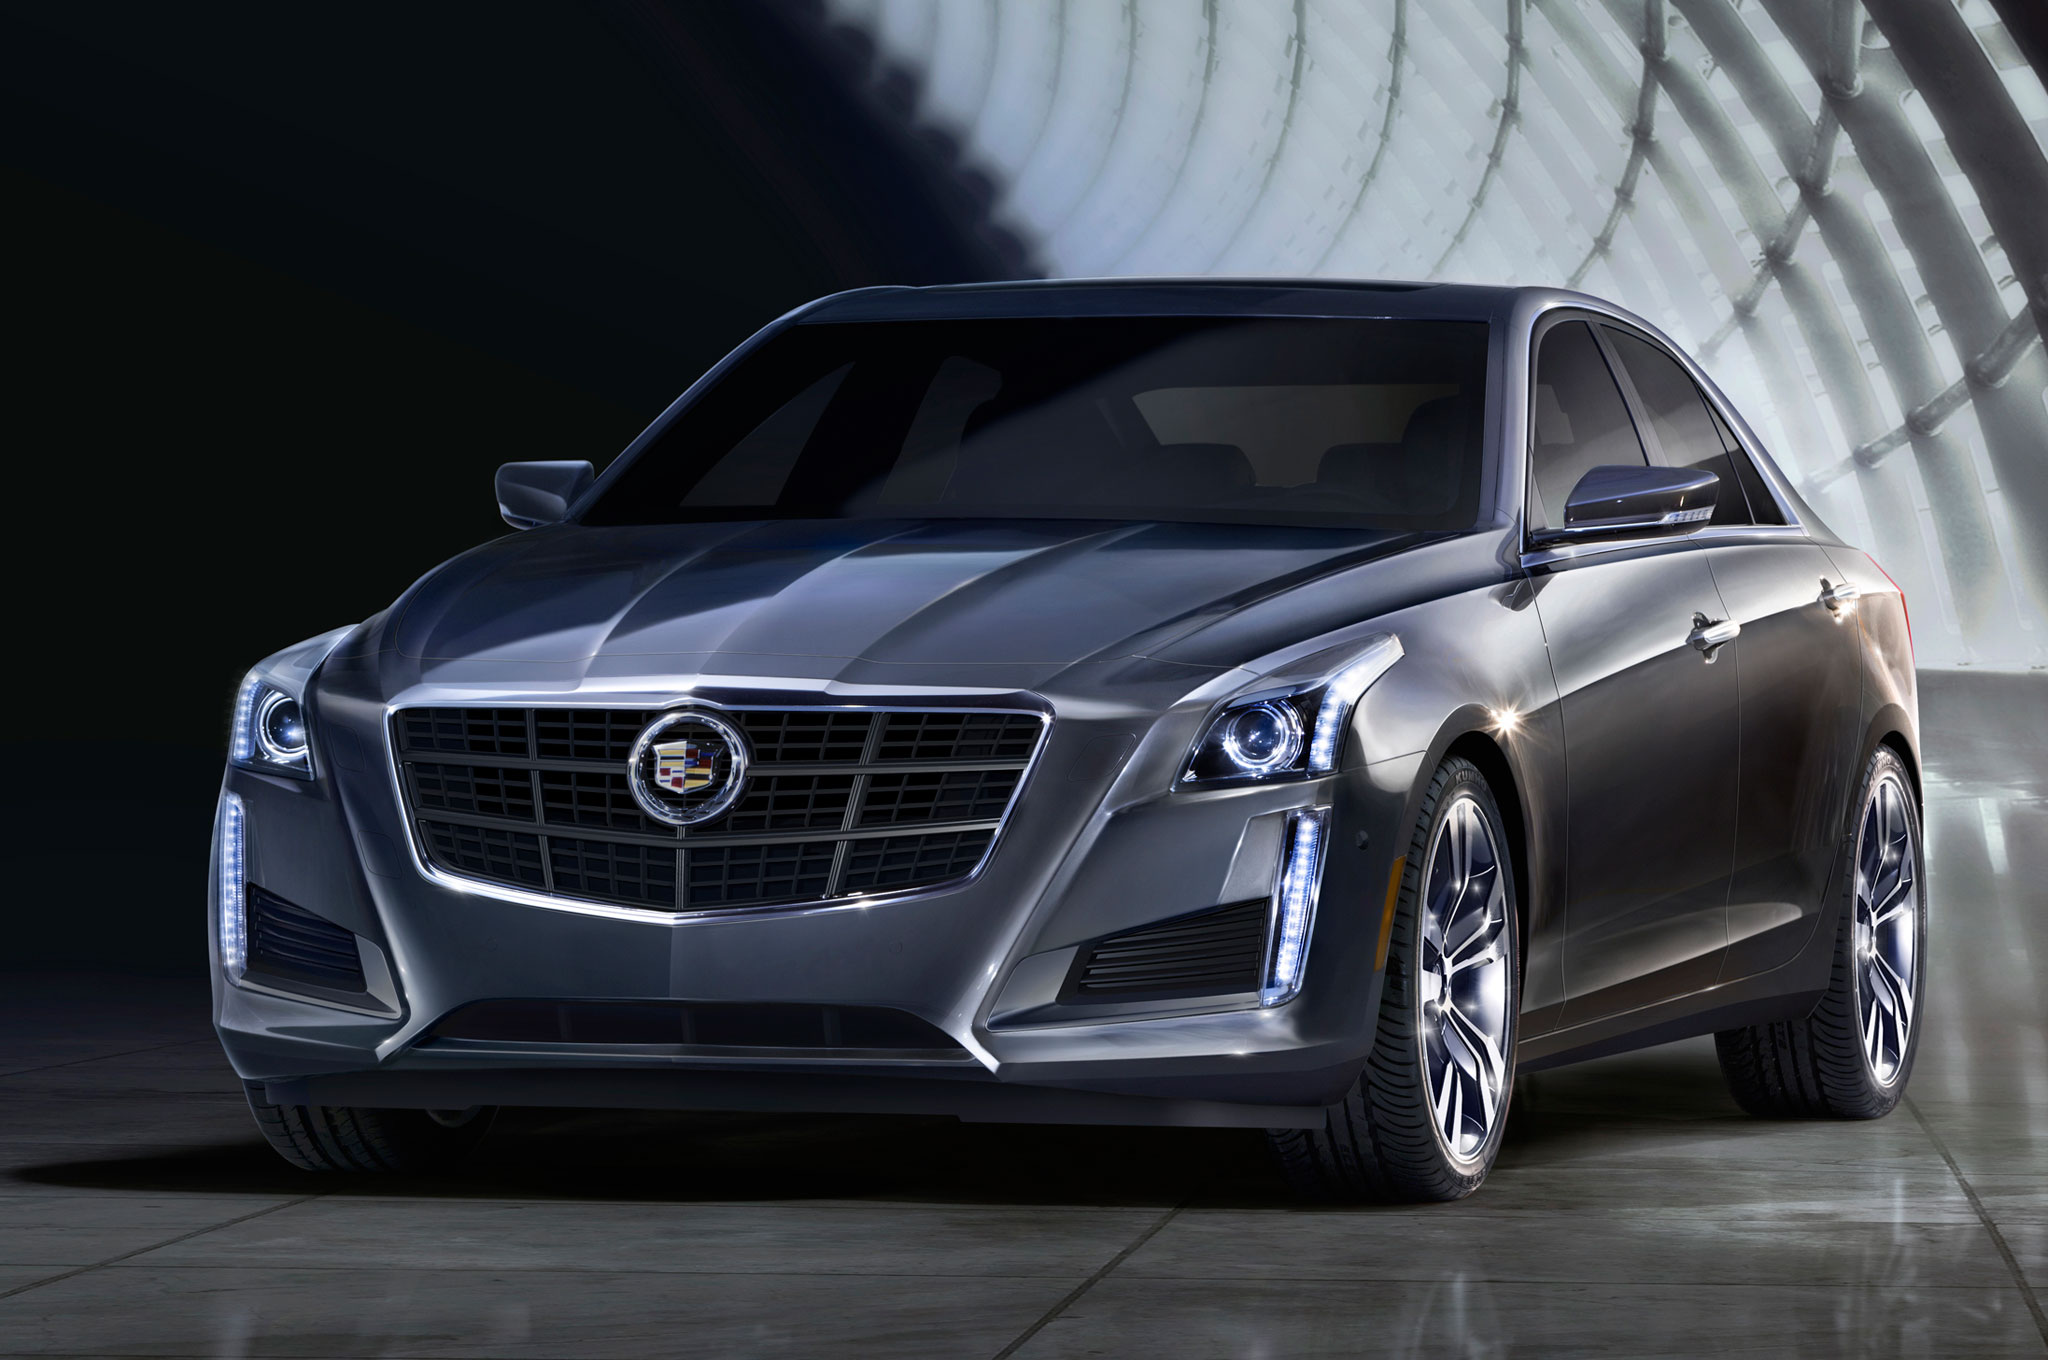 Ats Vs Cts >> Totd You Pick 2014 Cadillac Ats 3 6 Or Cts 2 0t Motortrend